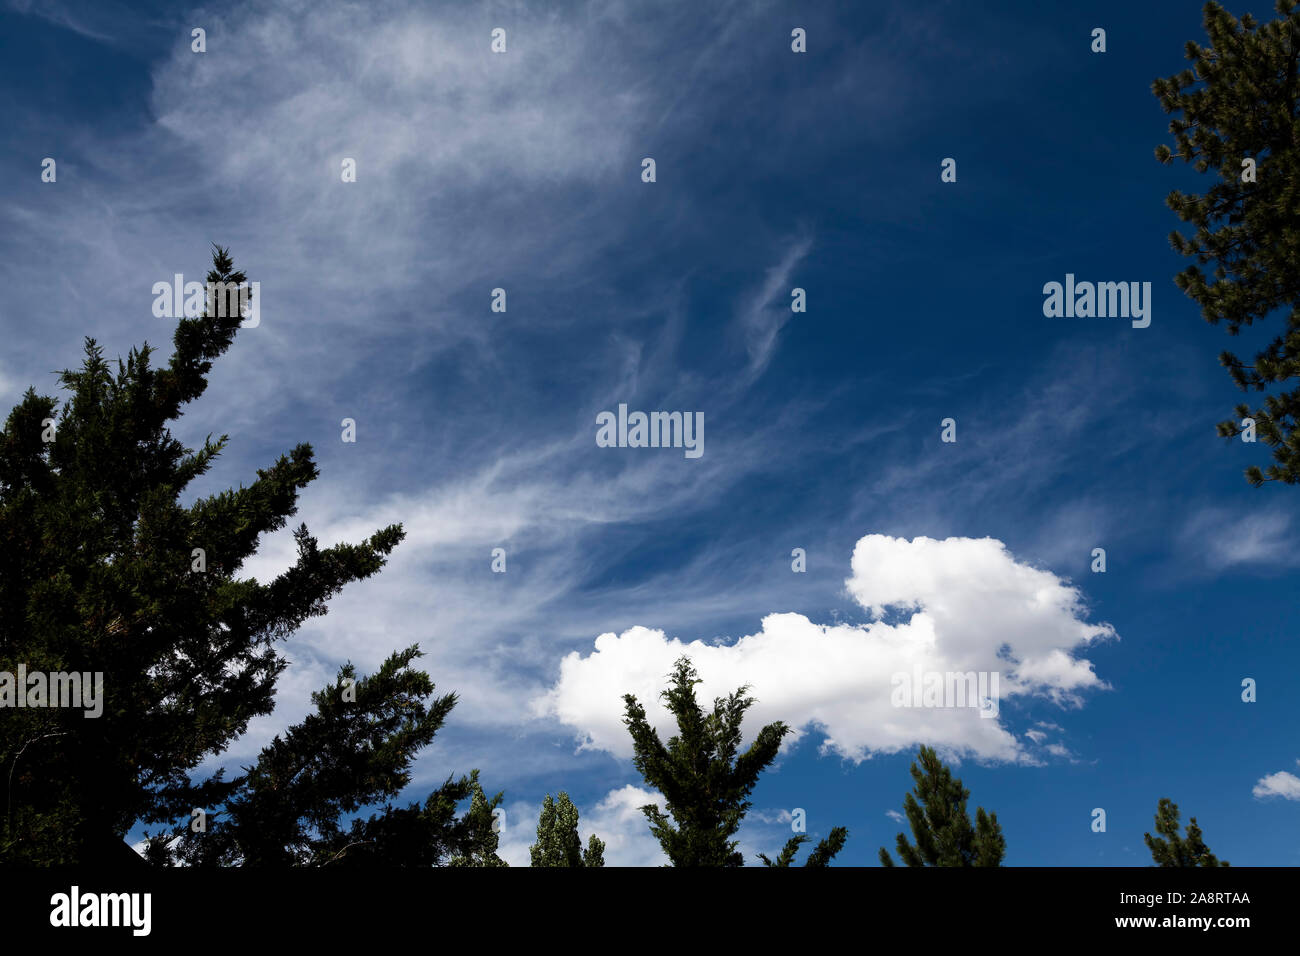 Blue Sky With White Clouds And Green Pine Tree Branches Southern California Stock Photo